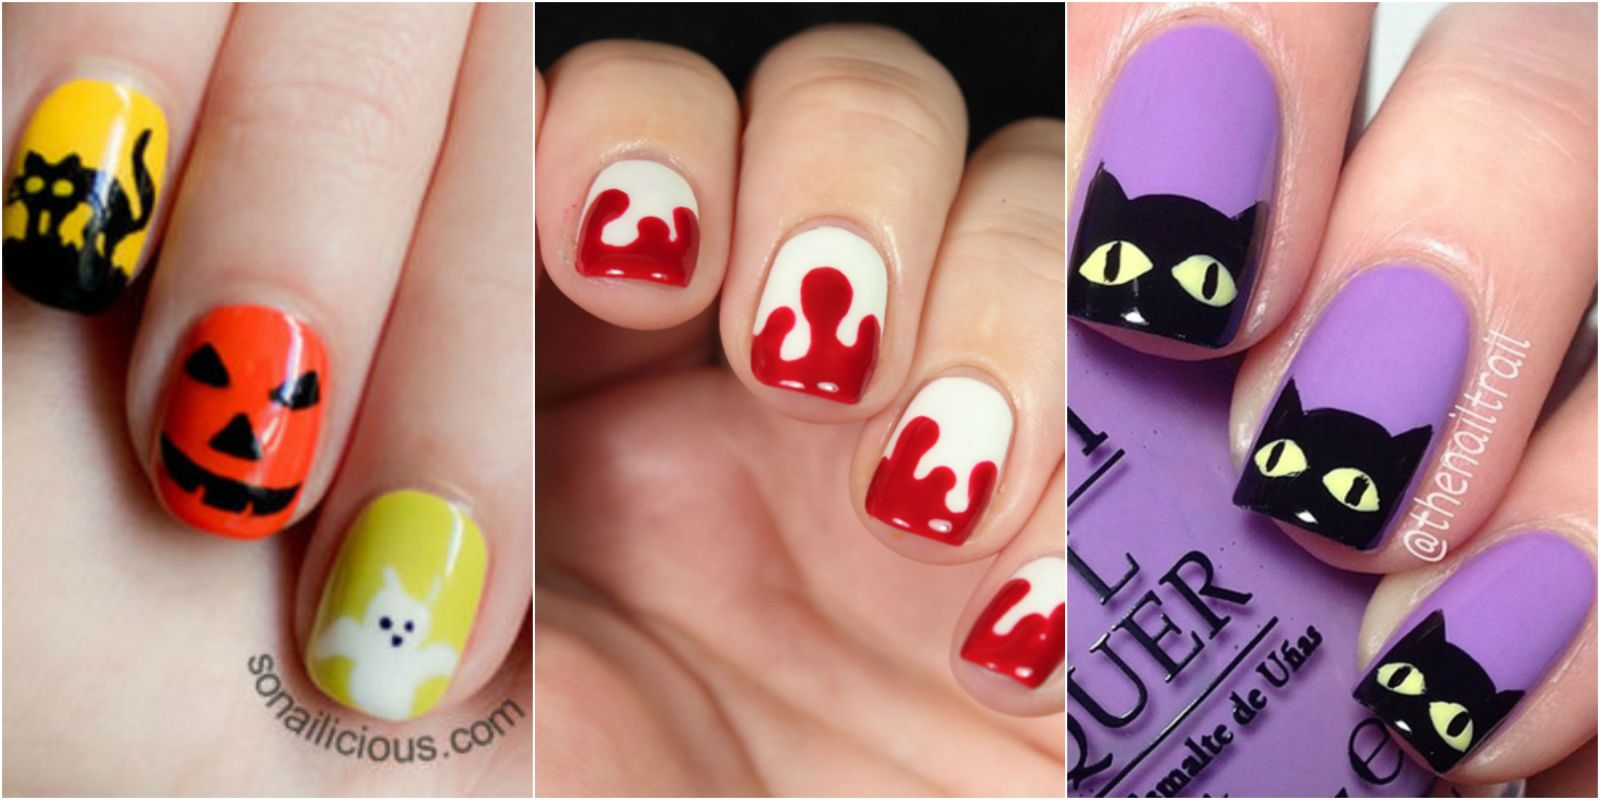 26 spooktacular halloween nail art ideas - Halloween Easy Nail Art